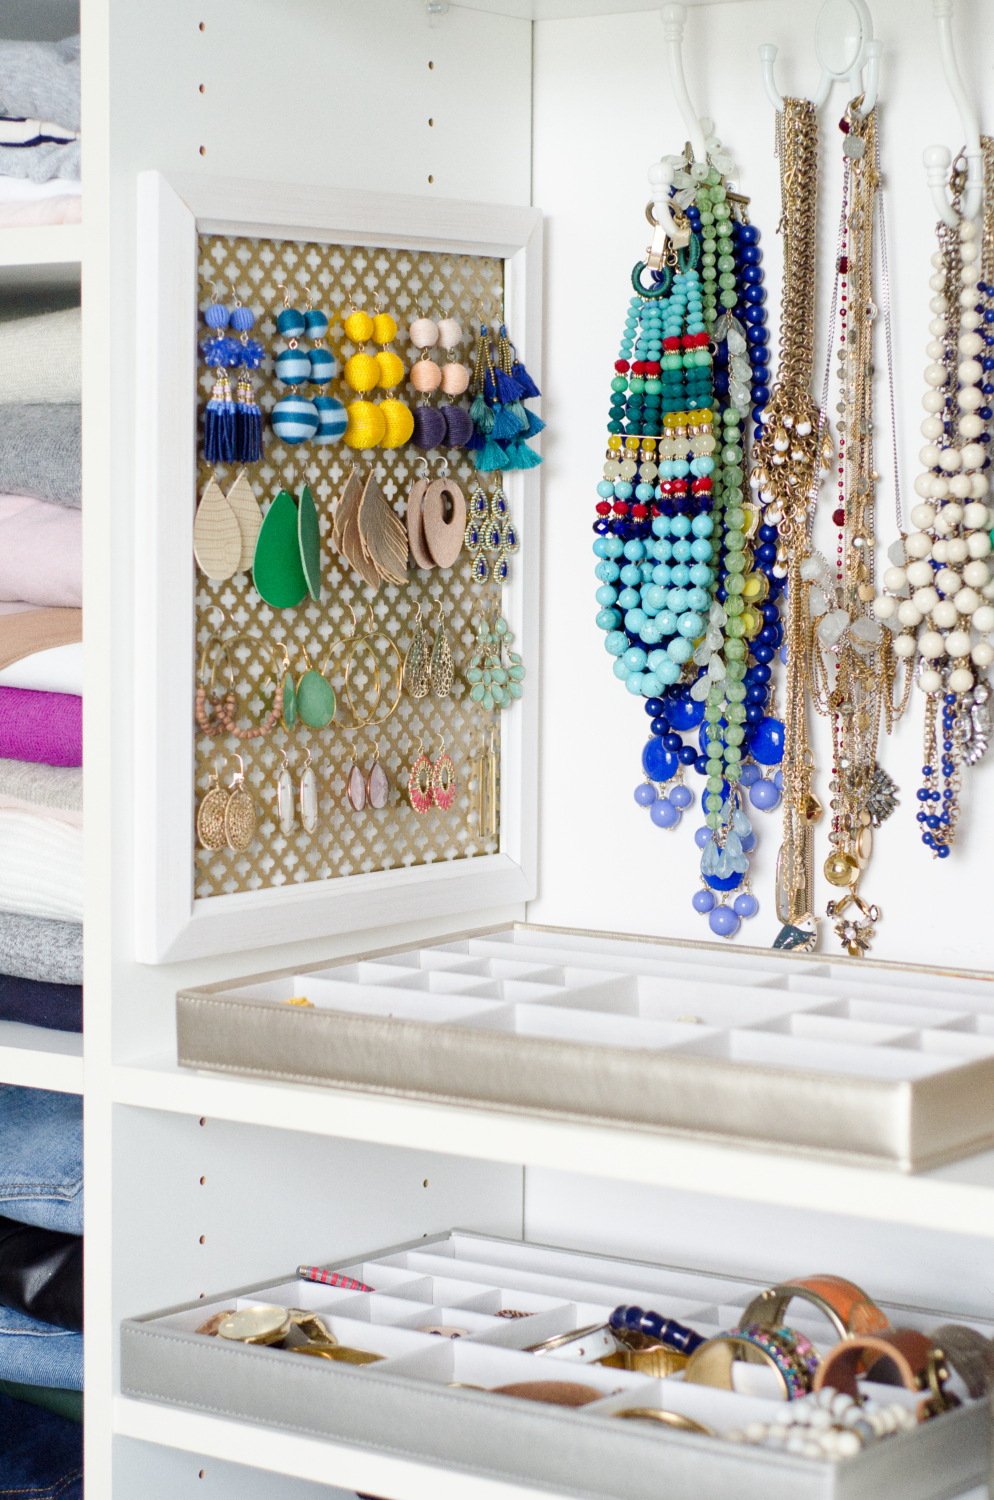 Make this DIY earring organizer in five minutes with just three things! It's an easy and inexpensive way to organize jewelry, No fancy DIY skills required!